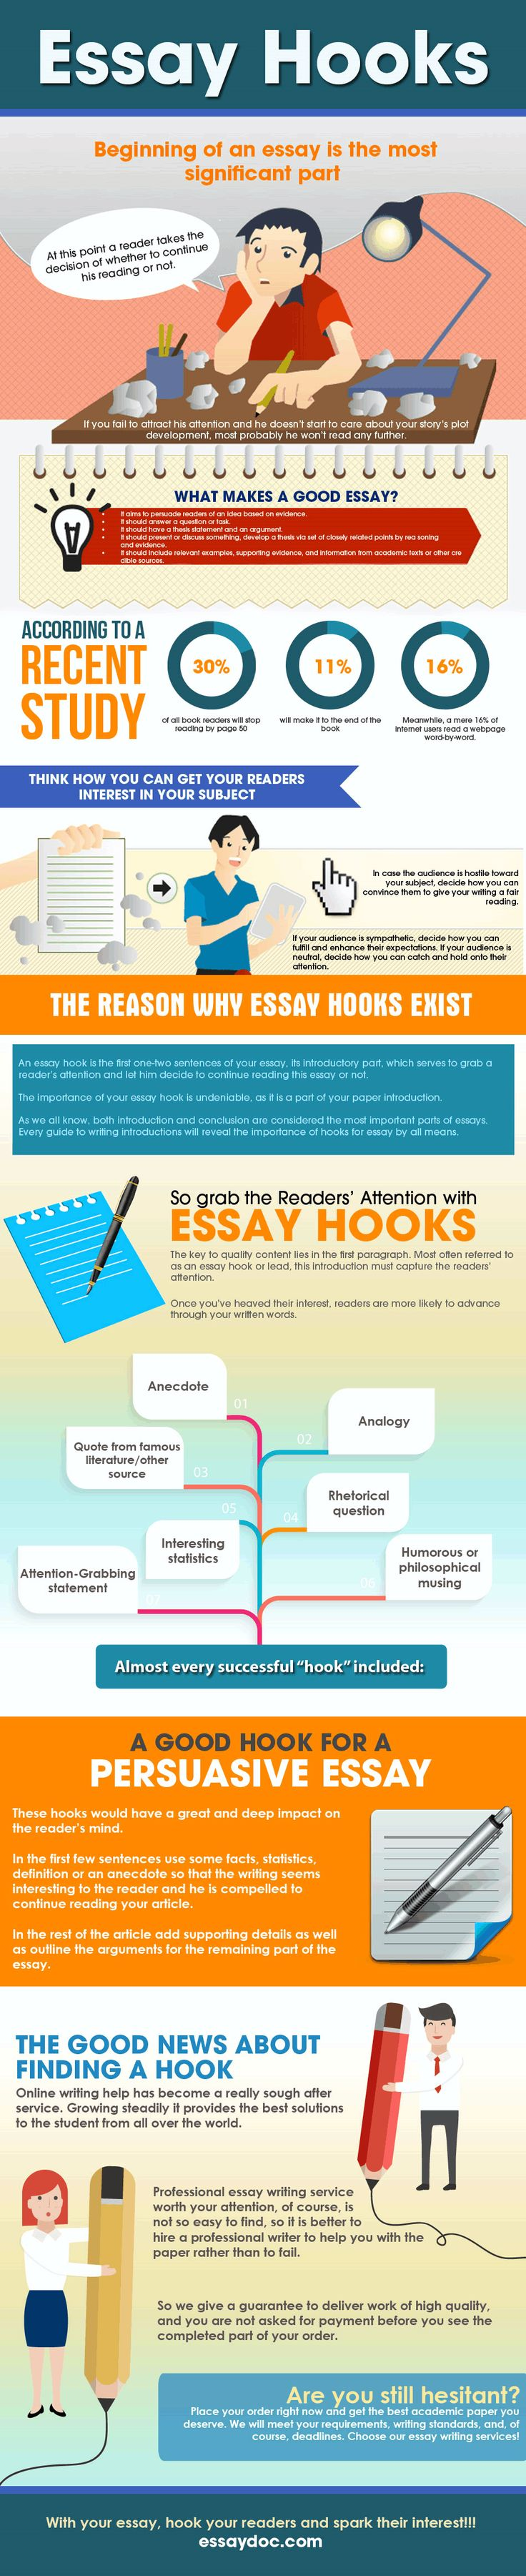 Can u pls help me form hook for an essay?